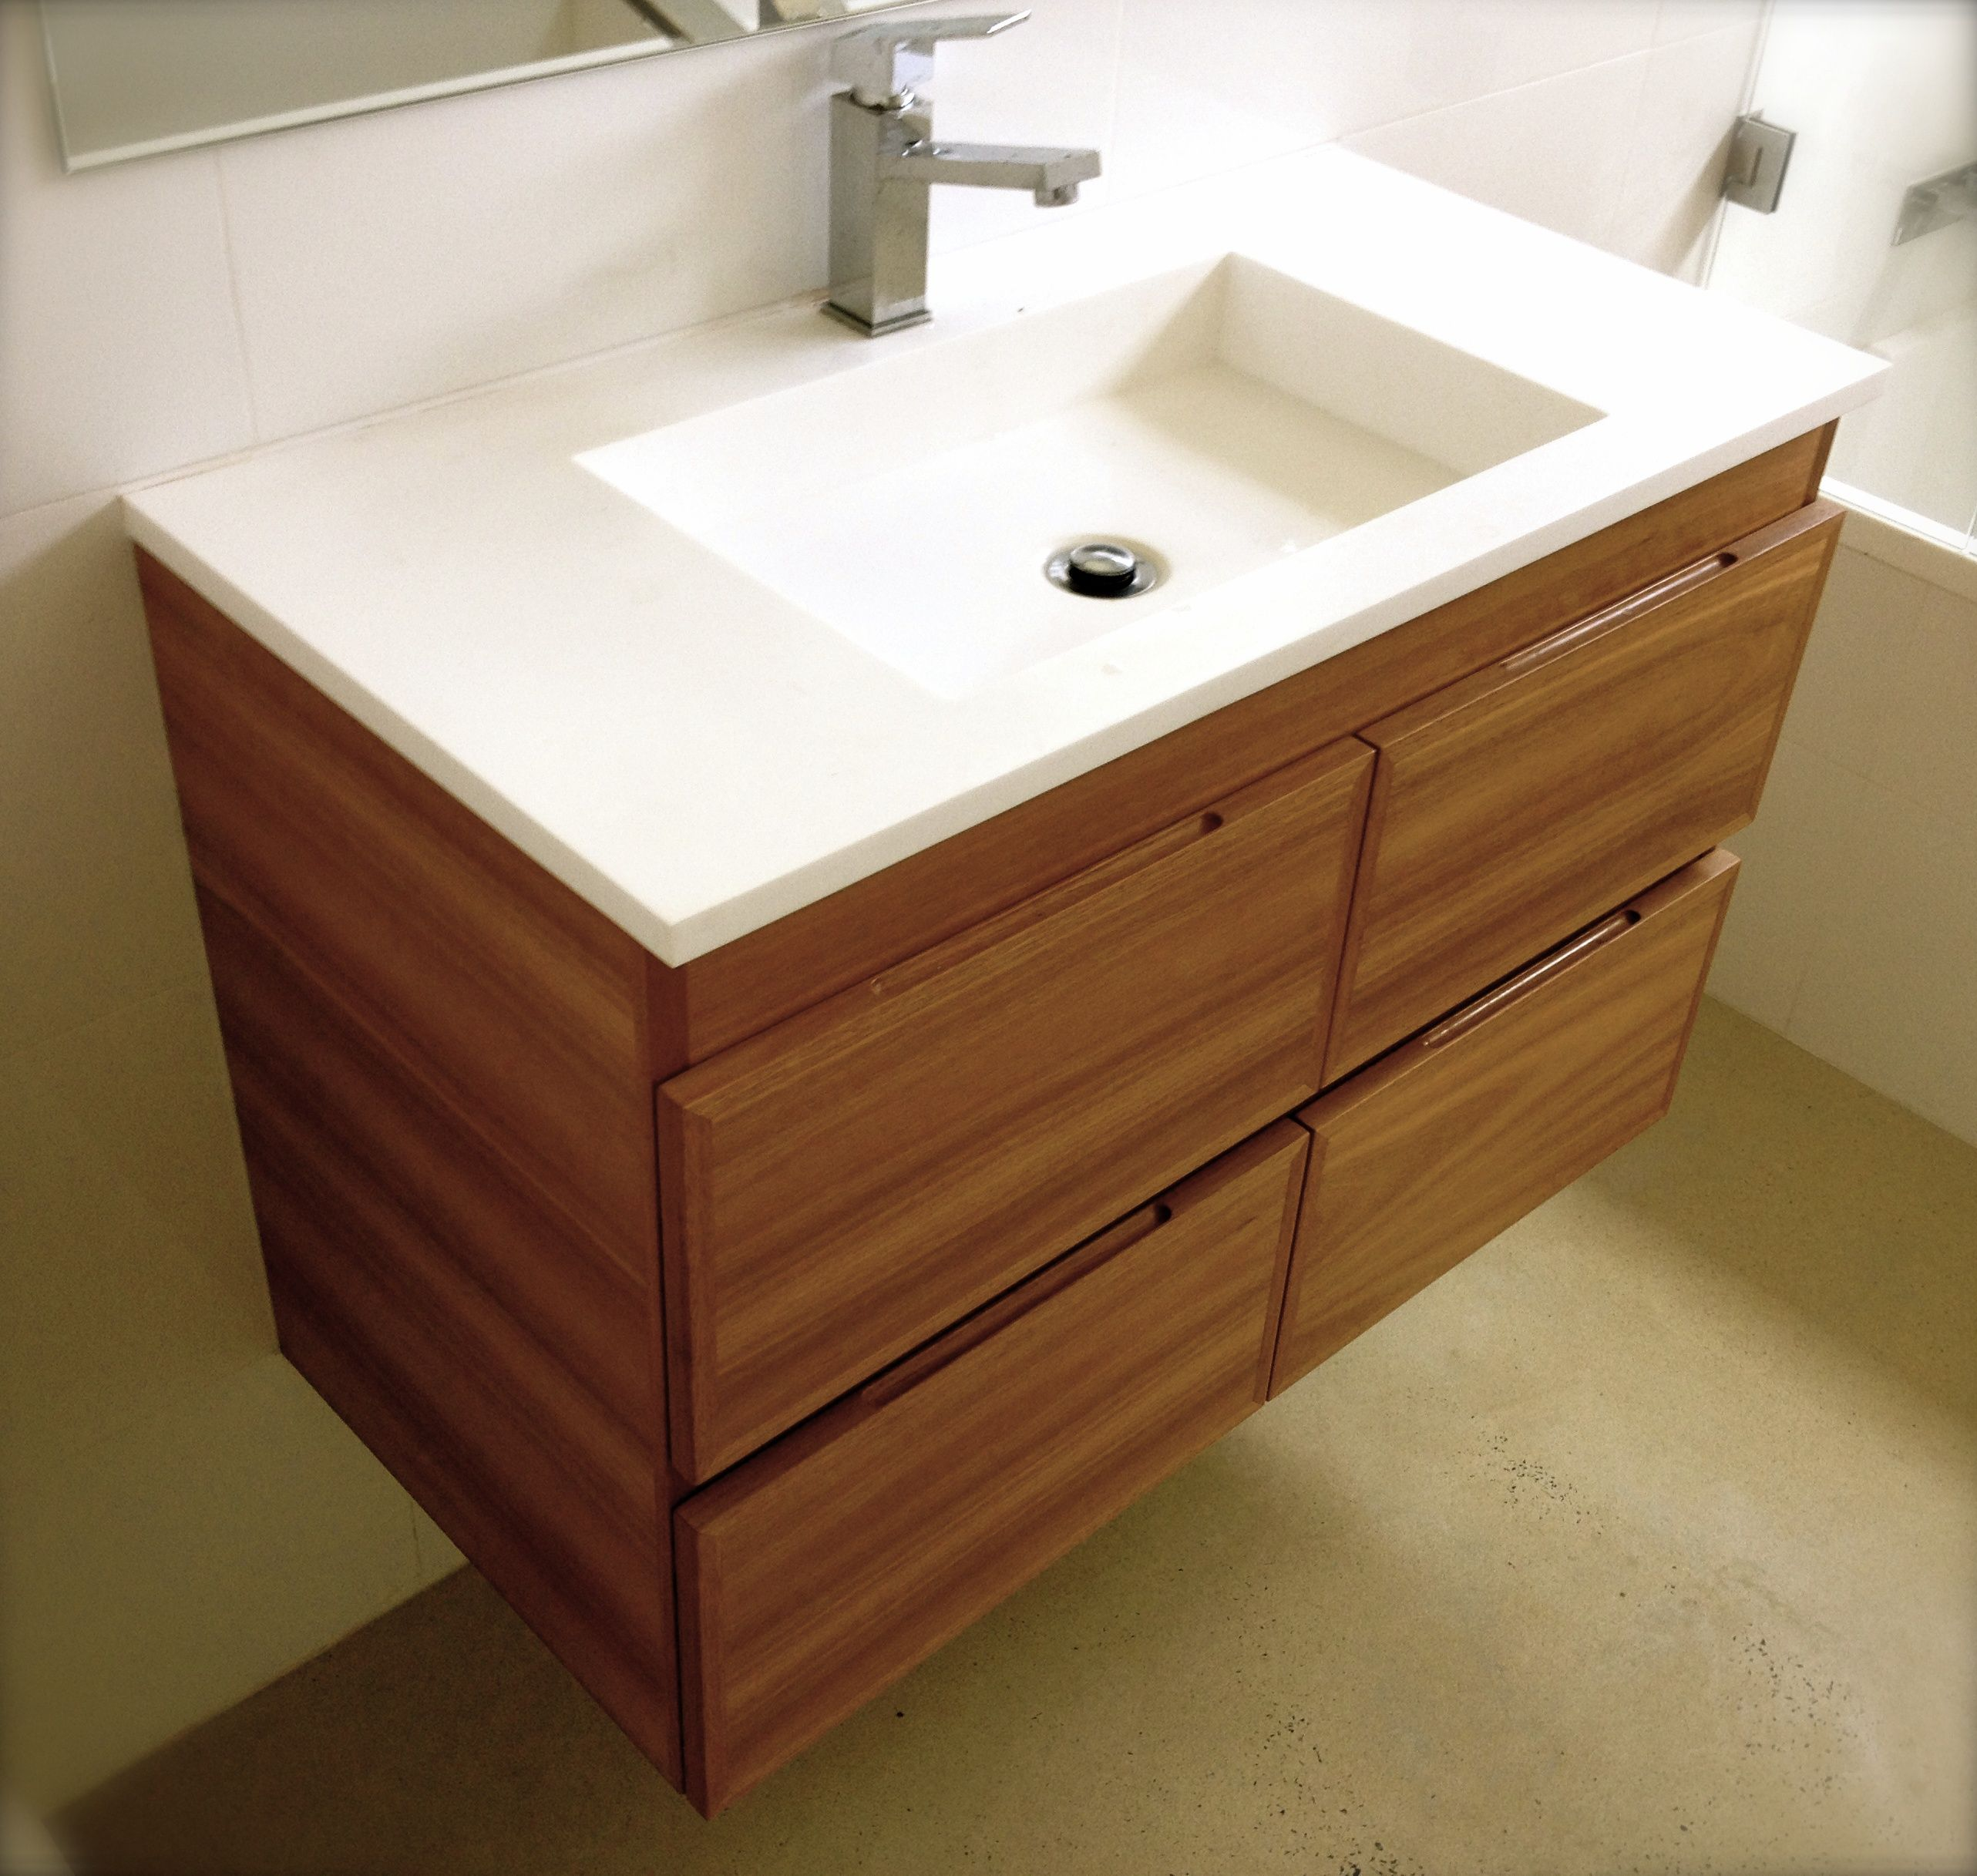 Bathroom Vanities Austin contemporary/modern bathroom vanity in australian blackbutt